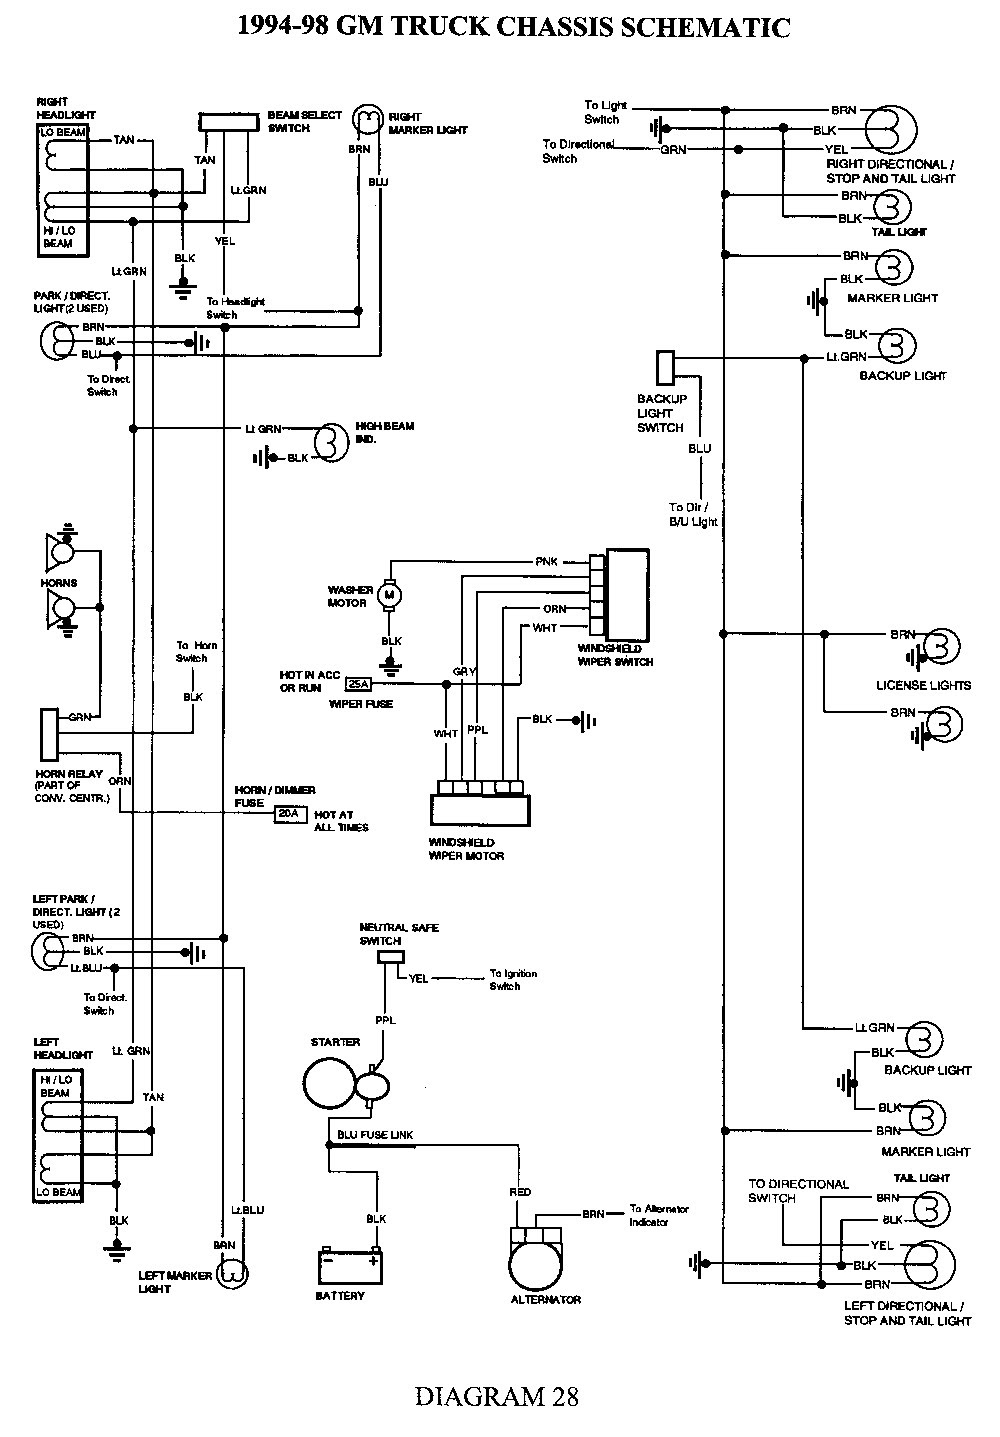 1994 S10 Marker Light Wiring Diagram How To Wire A Basement Diagram 2006cruisers Tukune Jeanjaures37 Fr